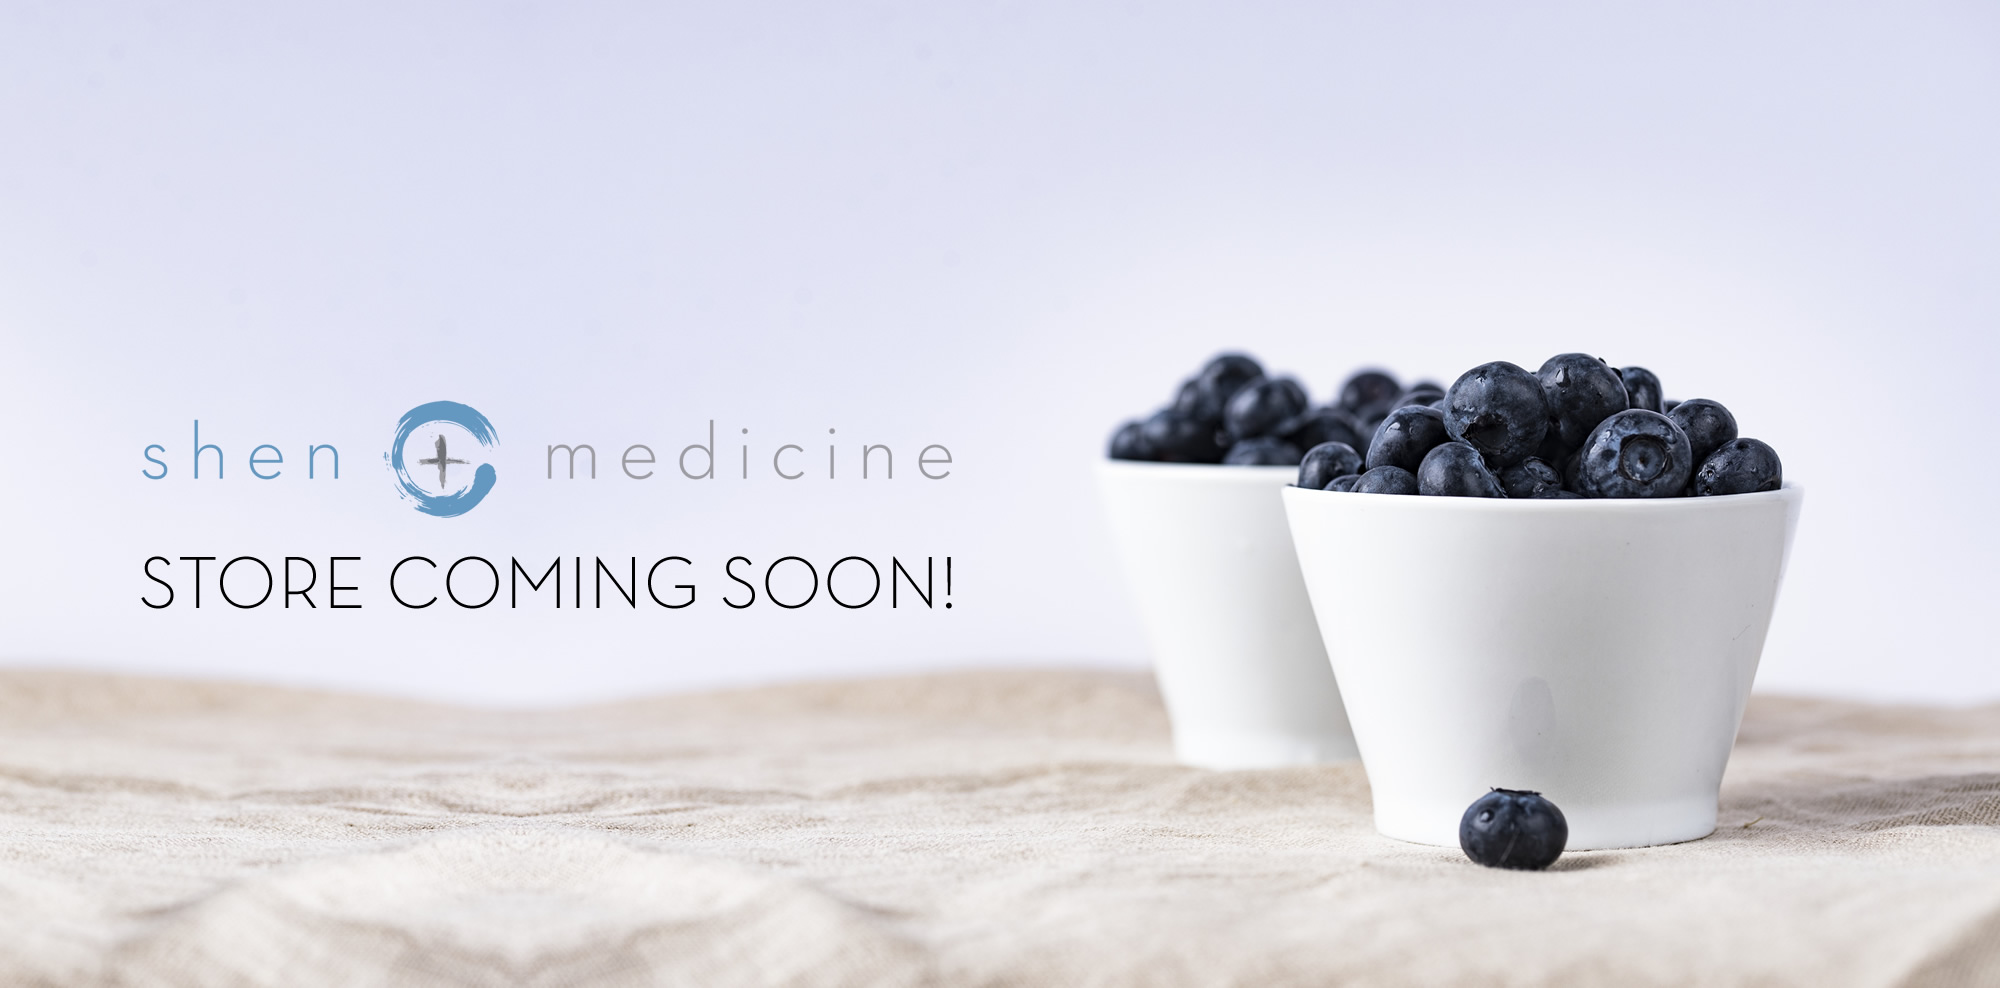 Shen Medicine Store - Coming Soon